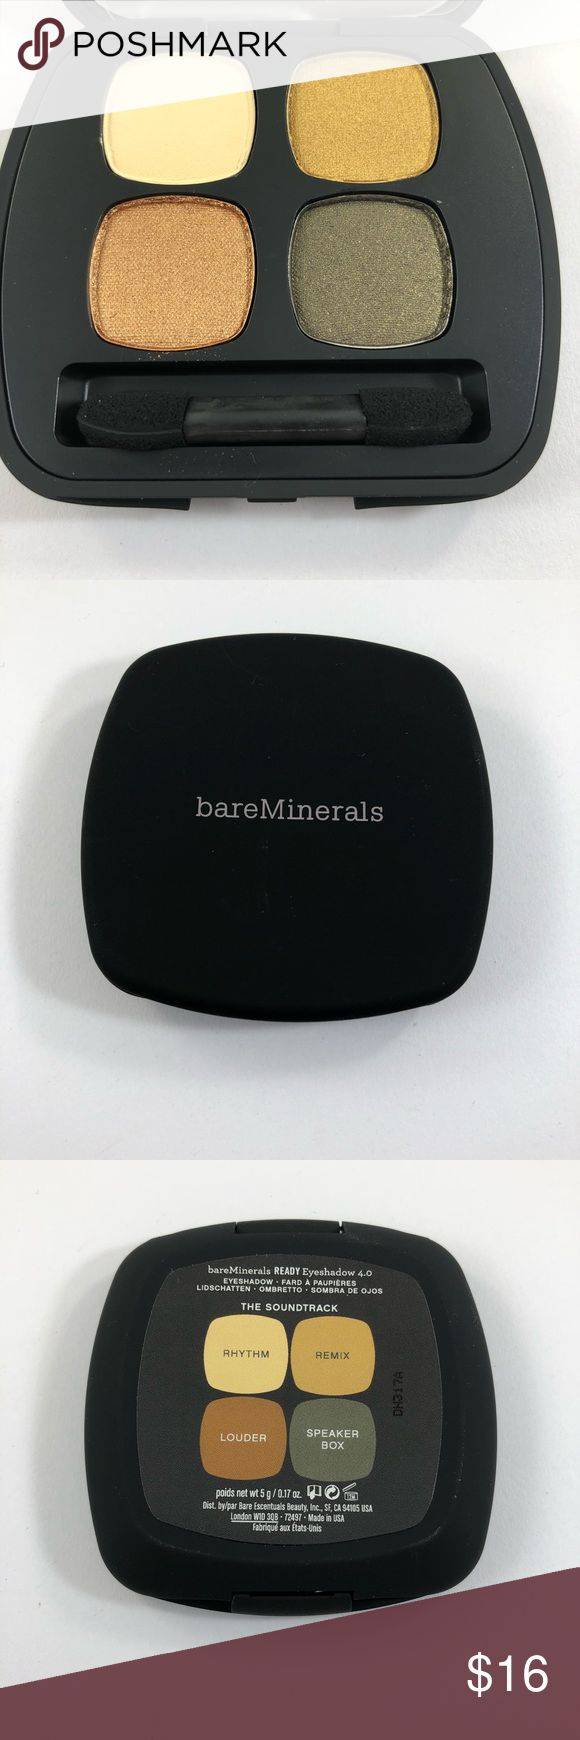 BareMinerals The Soundtrack Eyeshadow Palette New. A few marks in one shade from plastic protector. Every item on my page is authentic and was personally purchased. Smoke free home. I ship everything within 1 business day of cleared payment. No holds. No trades. If you have any questions please reach out! bareMinerals Makeup Eyeshadow